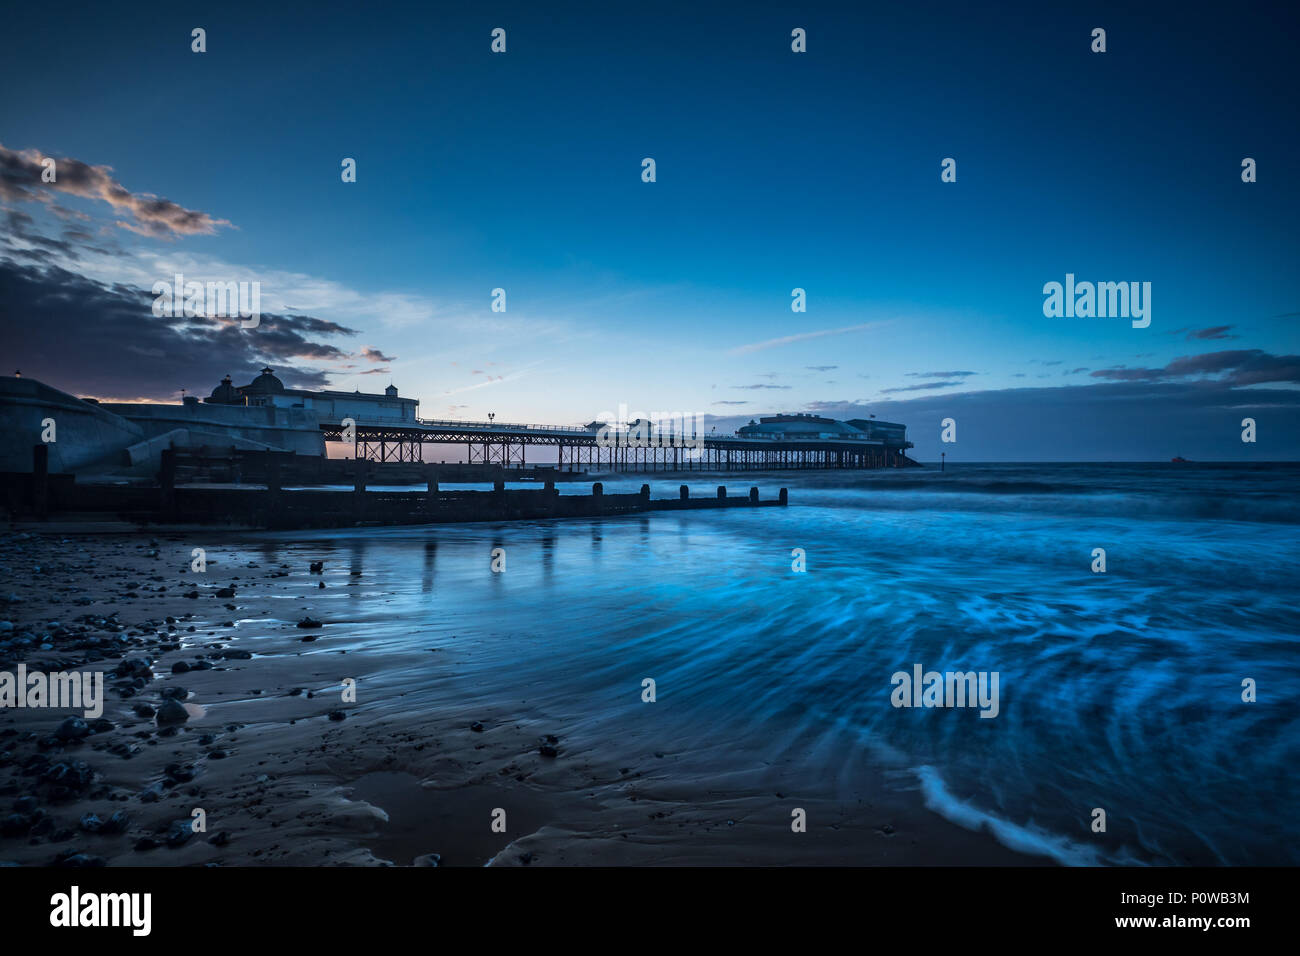 End of day at Cromer Pier - Stock Image